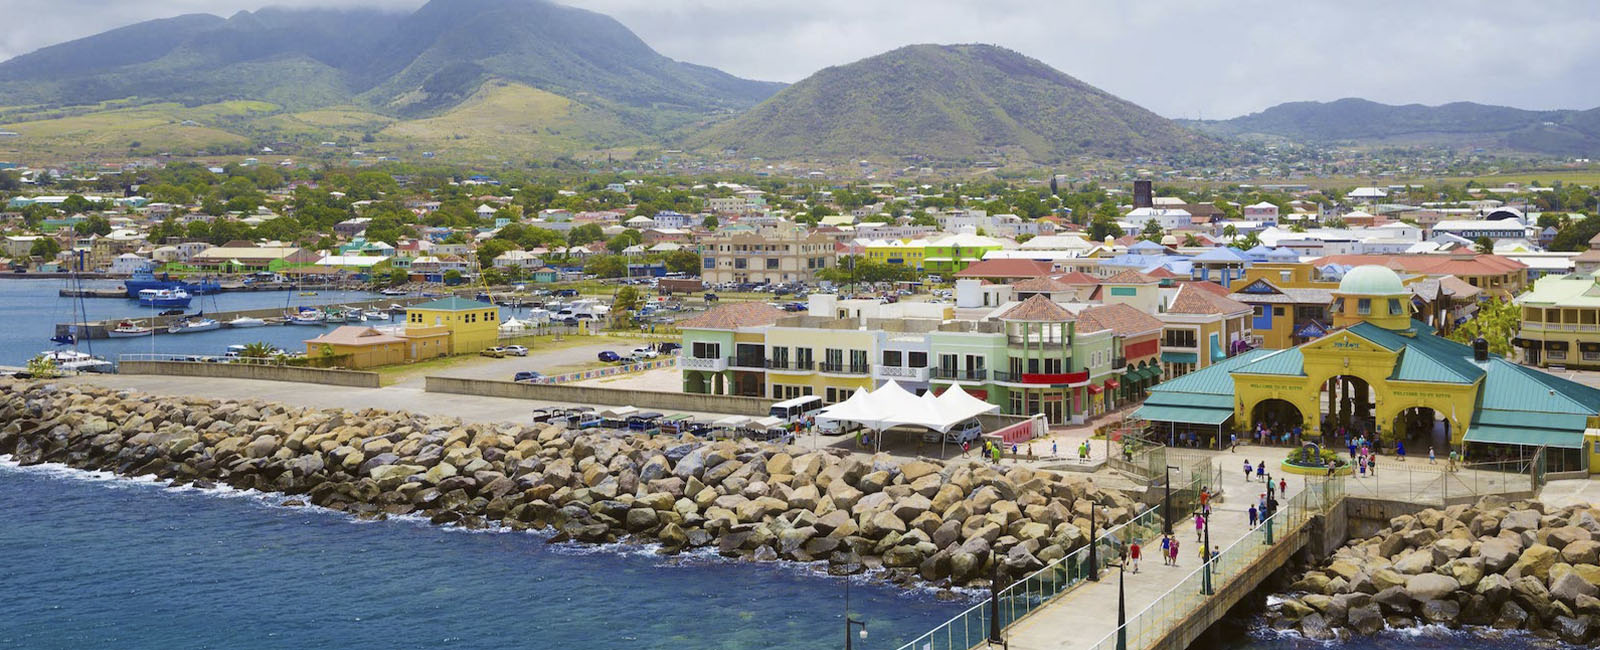 Saint Kitts & Nevis offers investors no taxes on worldwide income, capital gains, gift, wealth and inheritance.